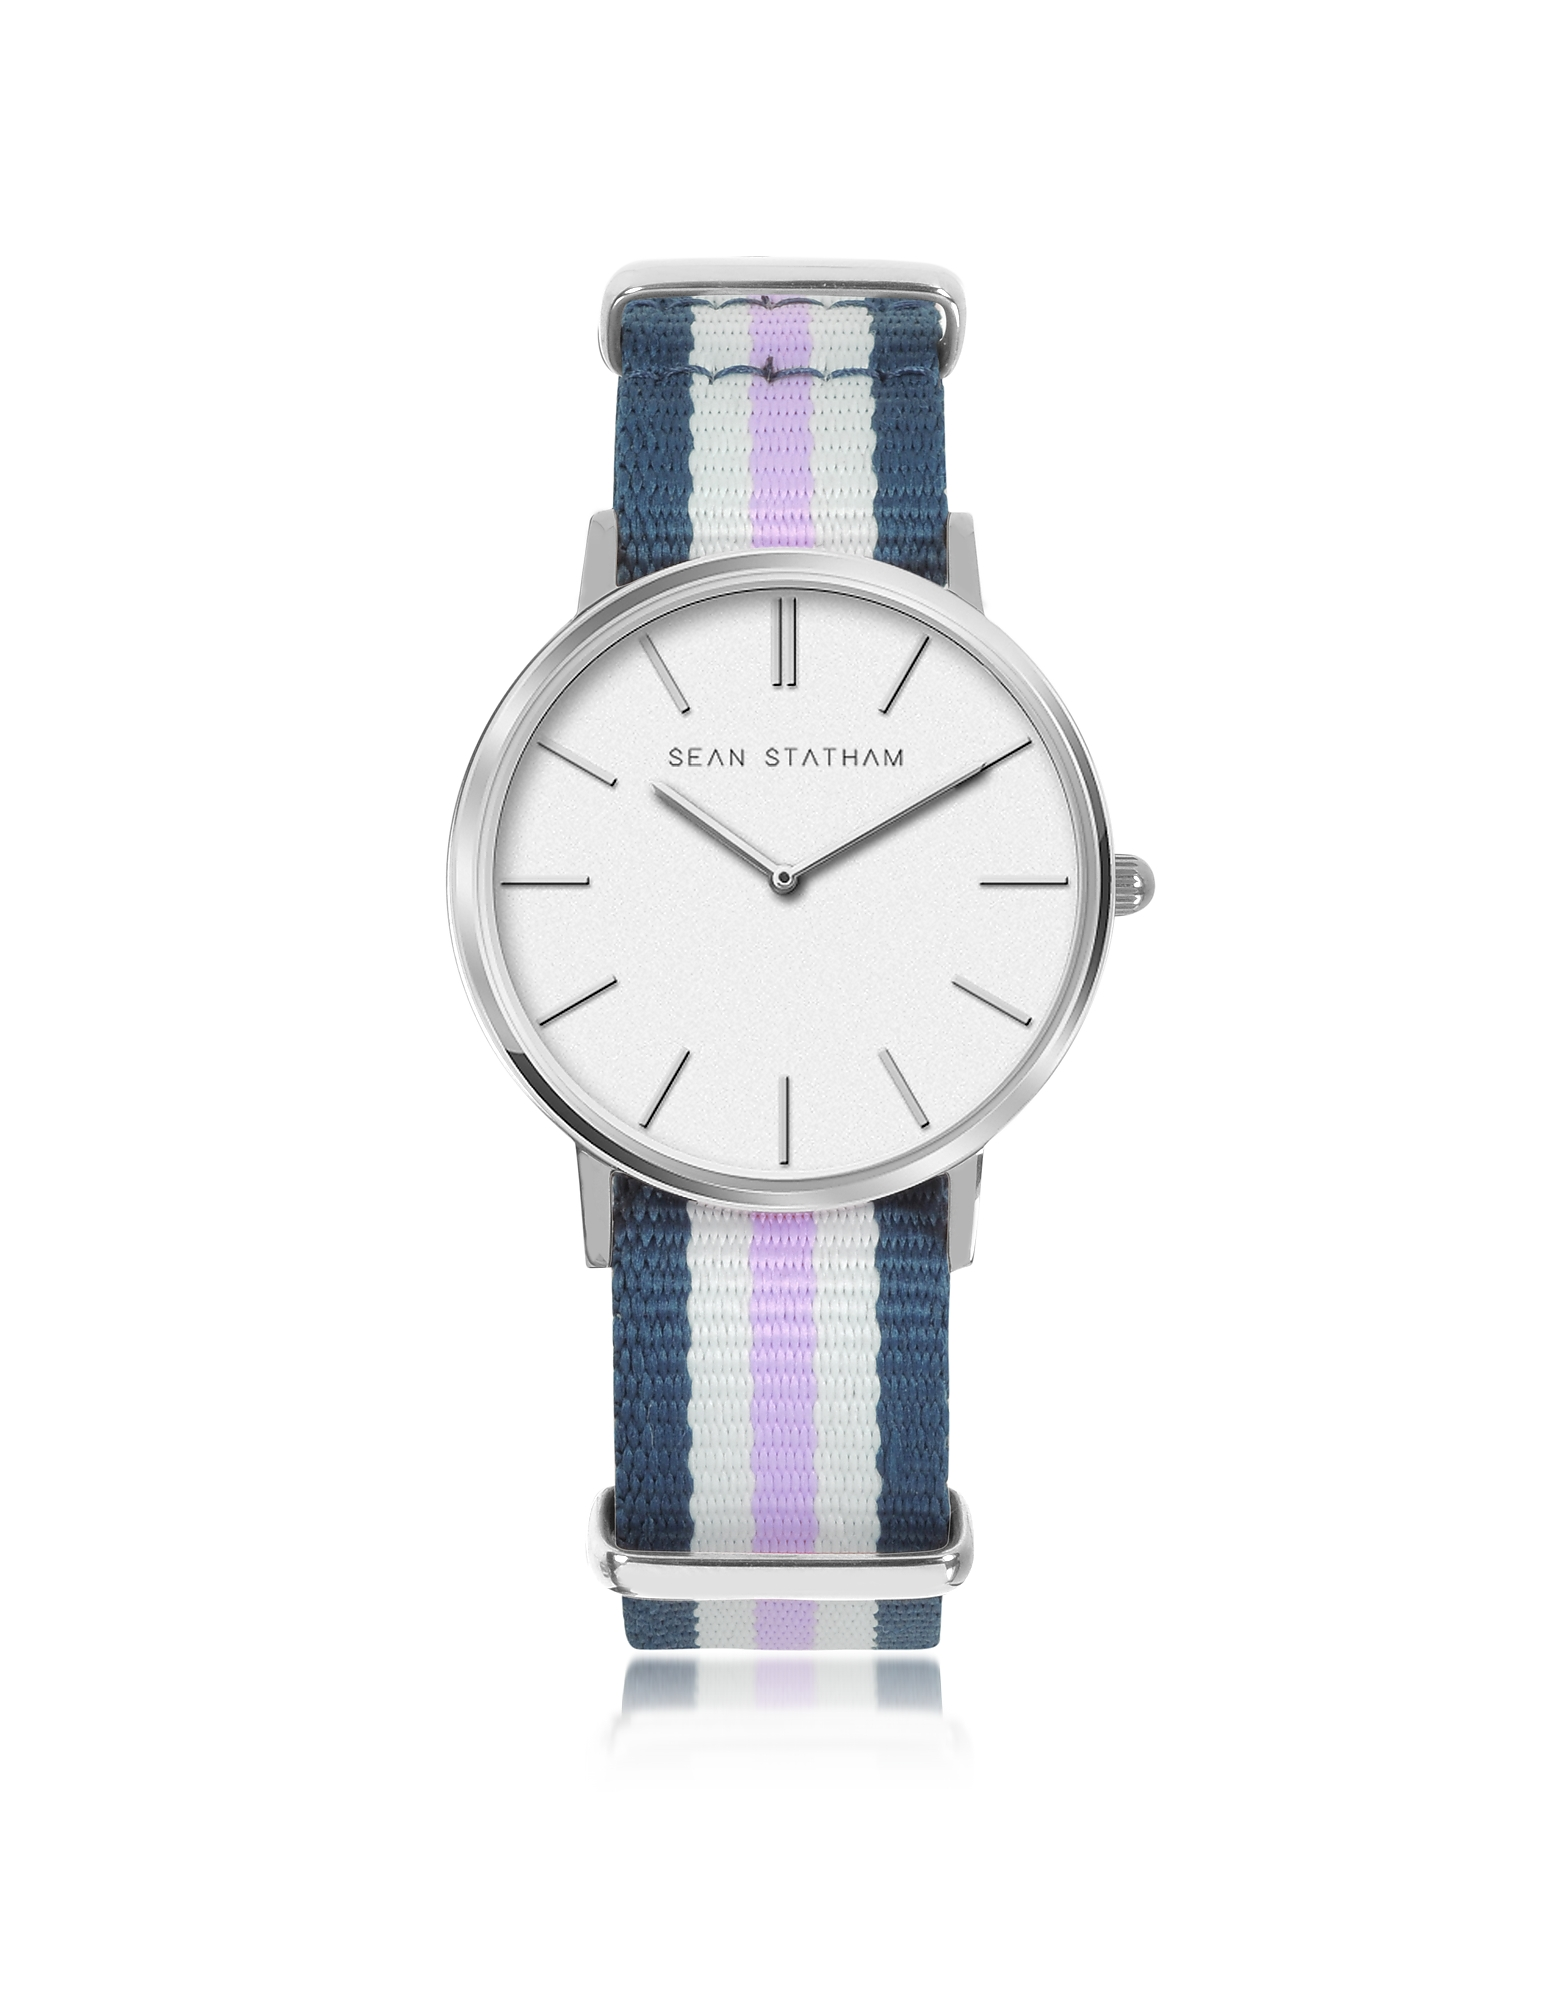 Image of Sean Statham Designer Women's Watches, Stainless Steel Unisex Quartz Watch w/Blue and Violet Striped Canvas Band